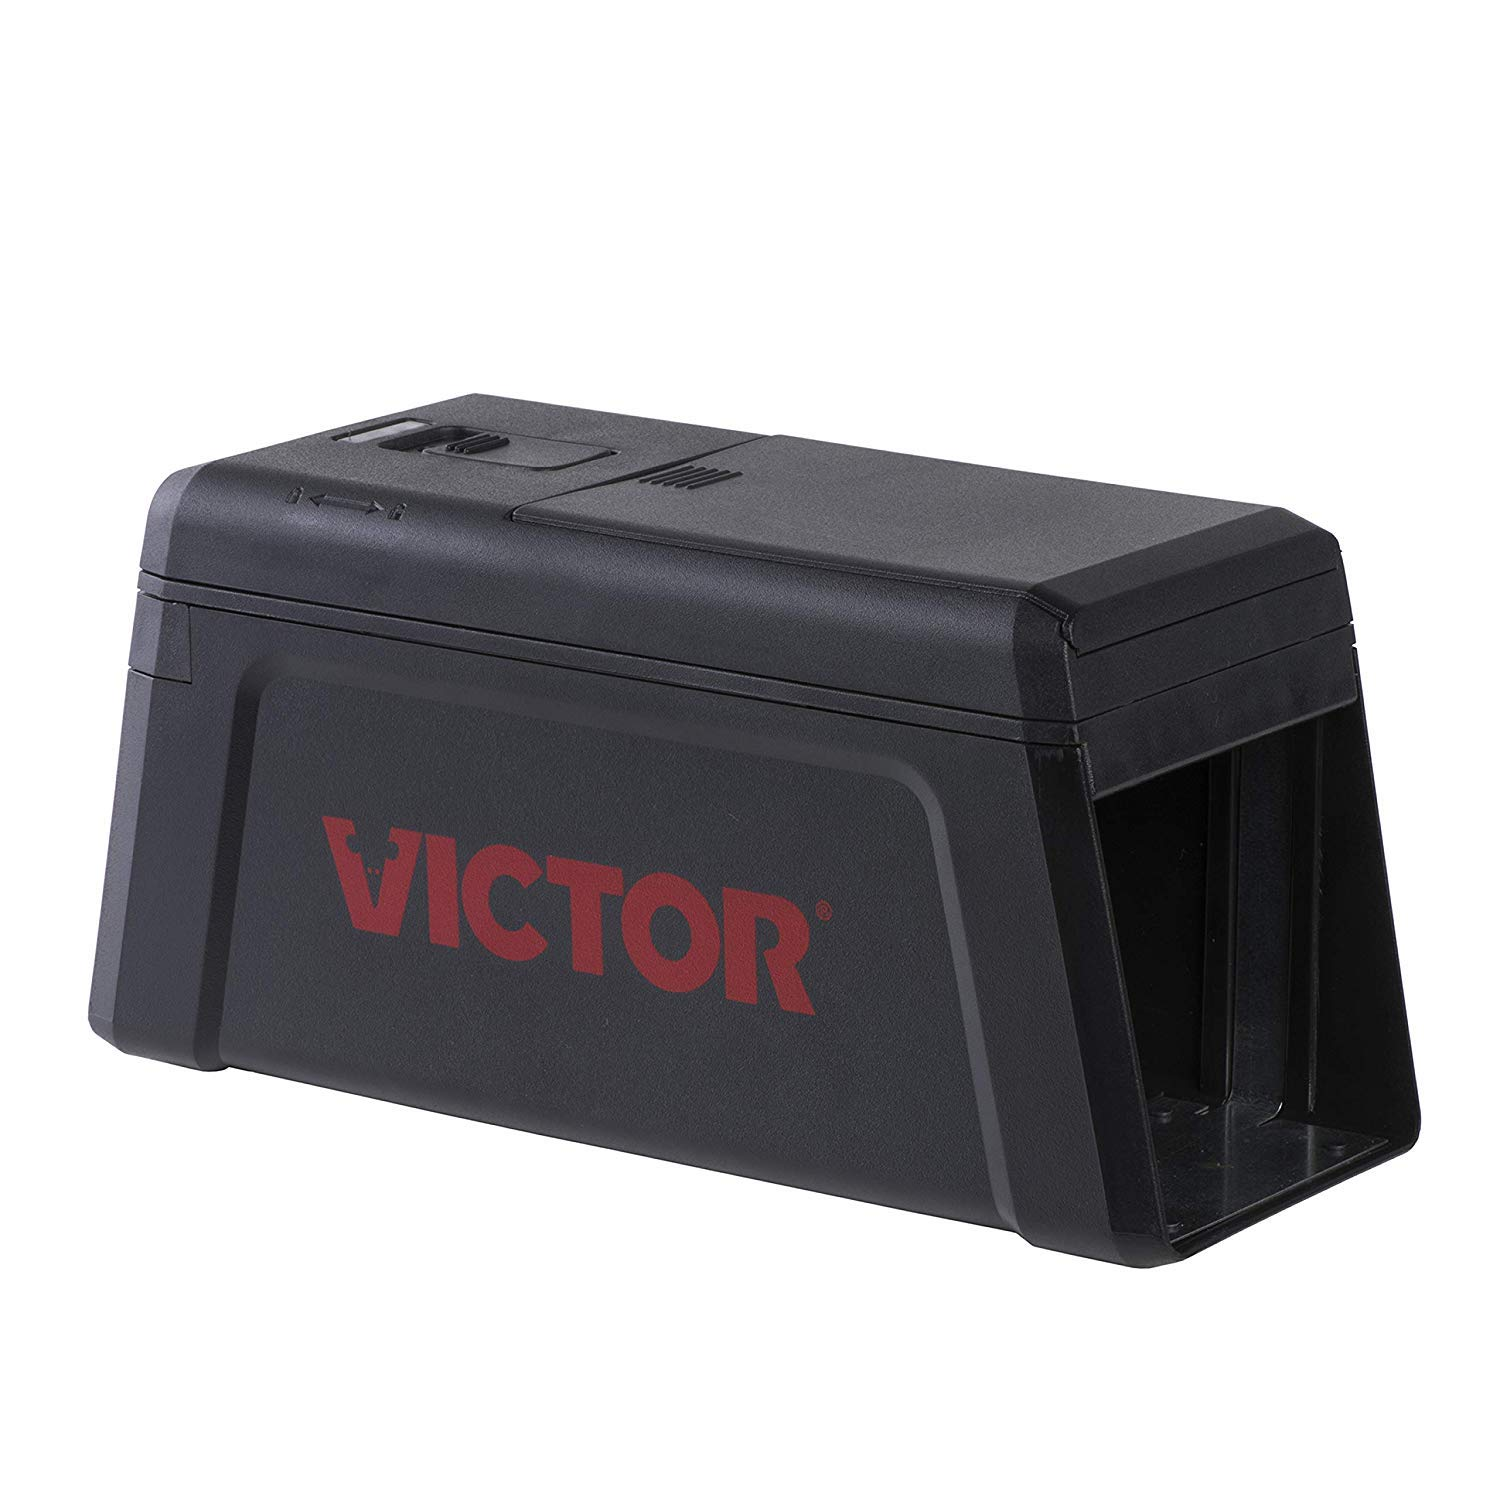 Victor M241 No Touch, No See Upgraded Electronic Rat Trap, 1 Black by Victor